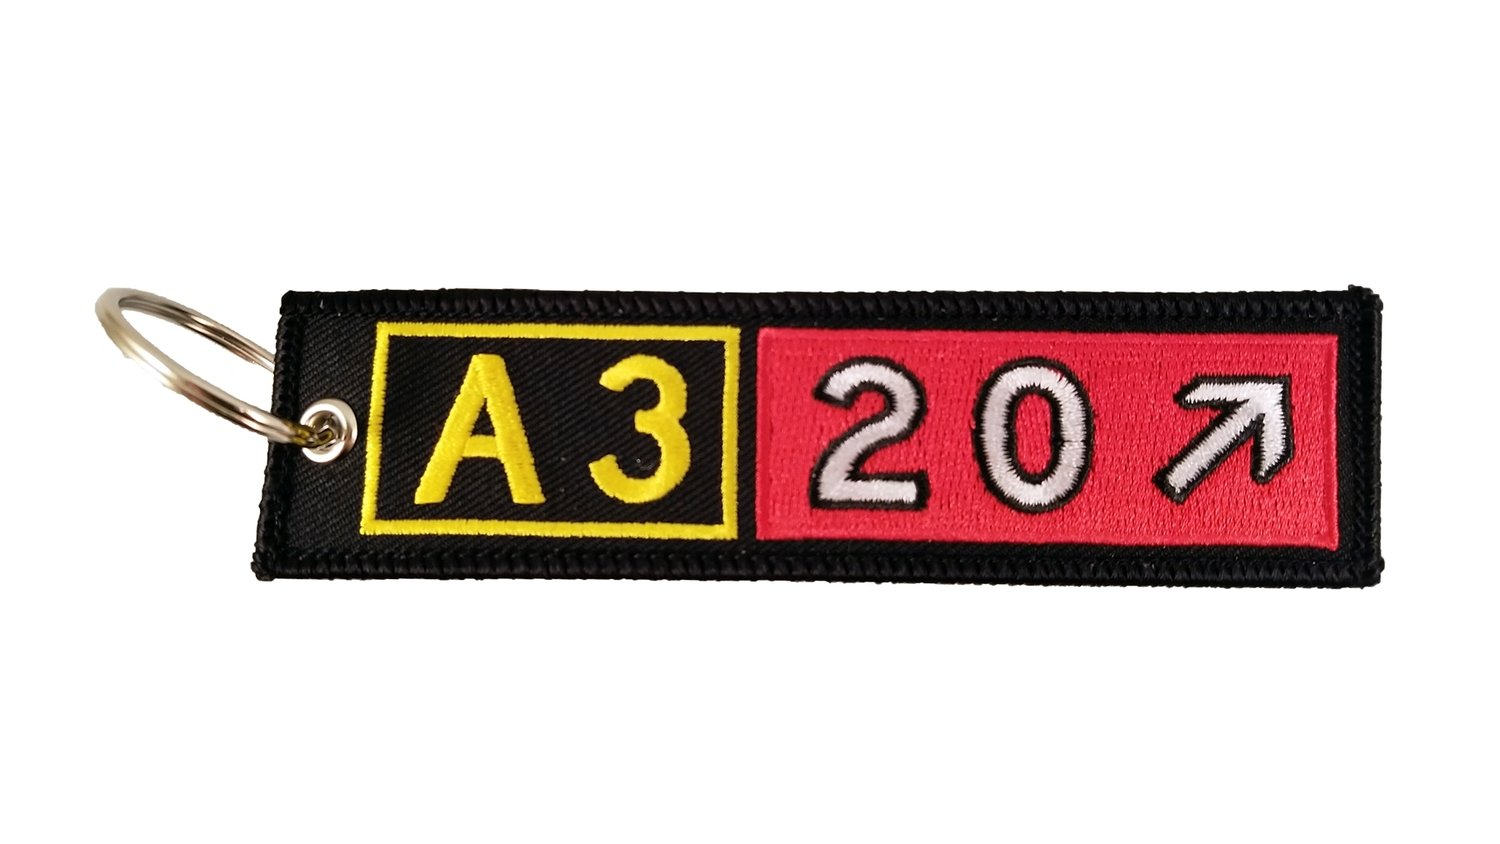 Airbus A320 Embroidered Taxiway Sign Keychain